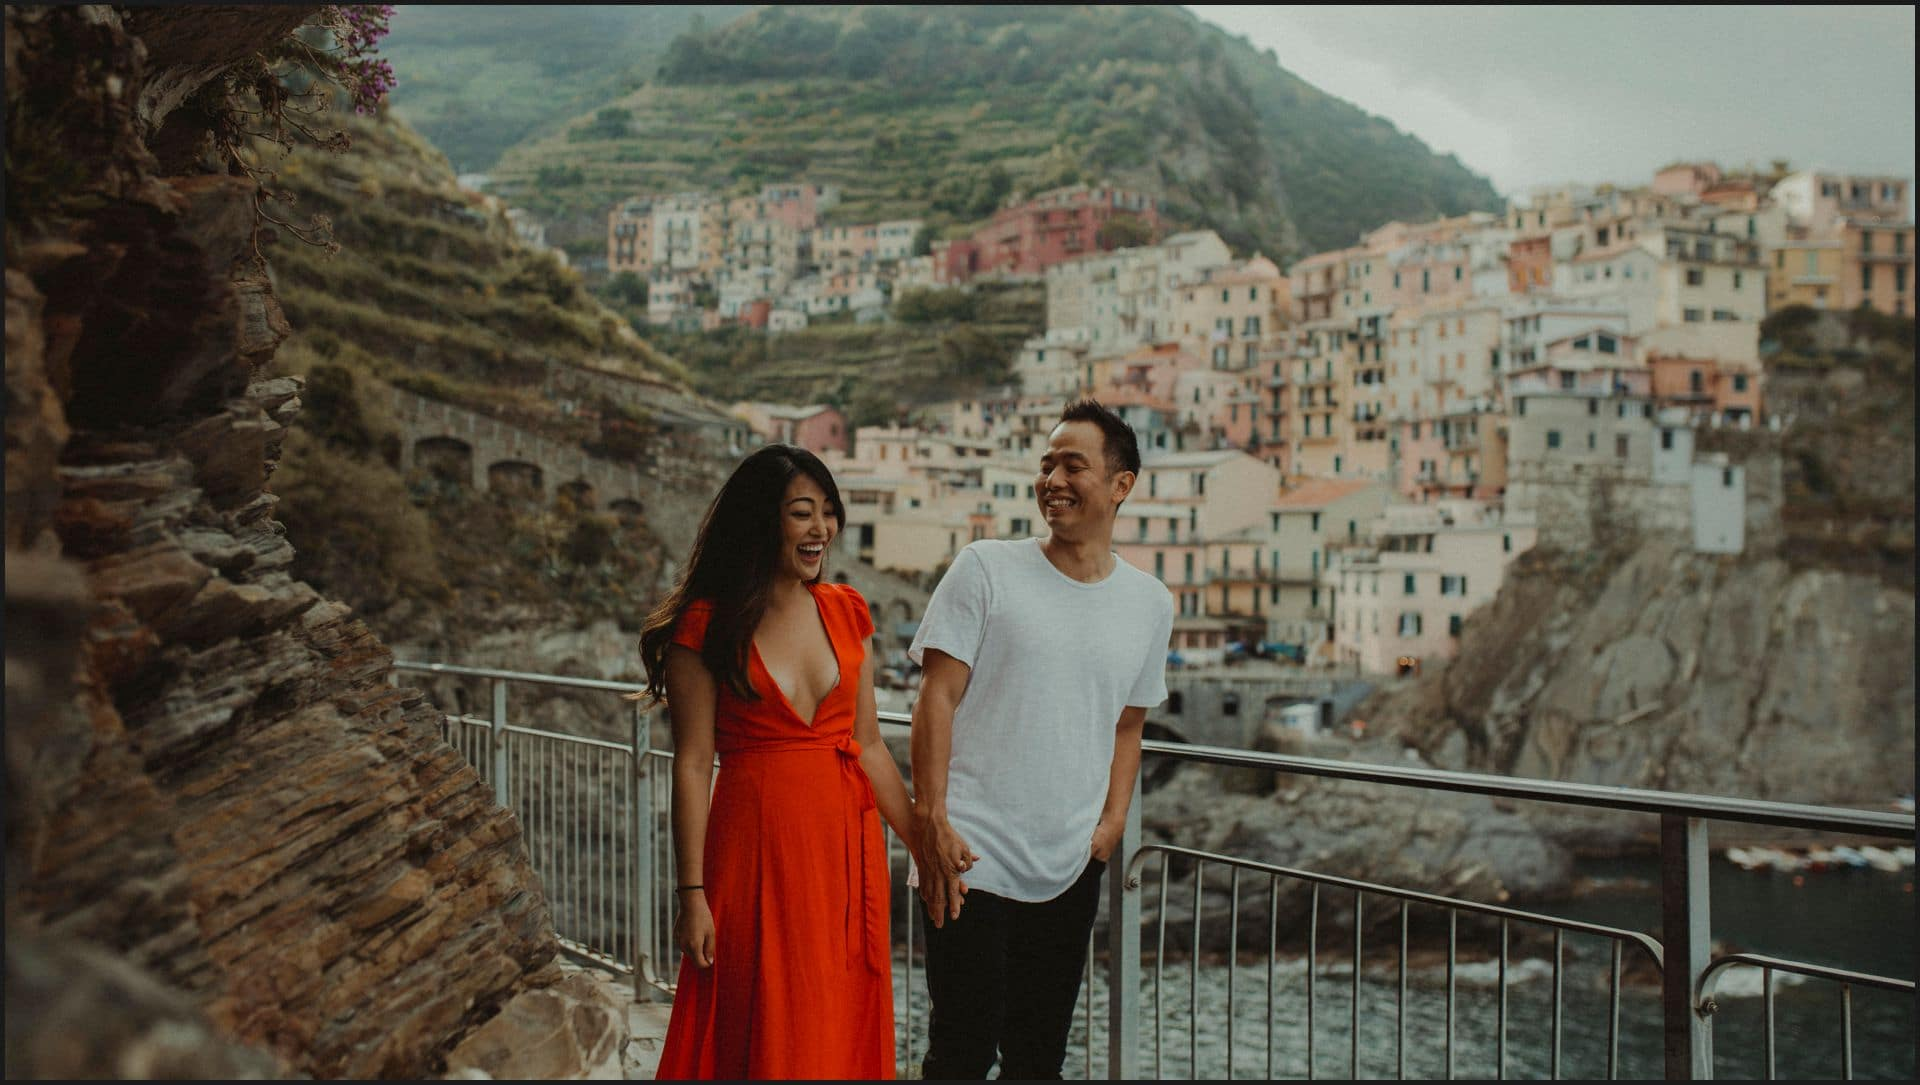 manarola, cinque terre, engagement session, candid picture, boy, girl